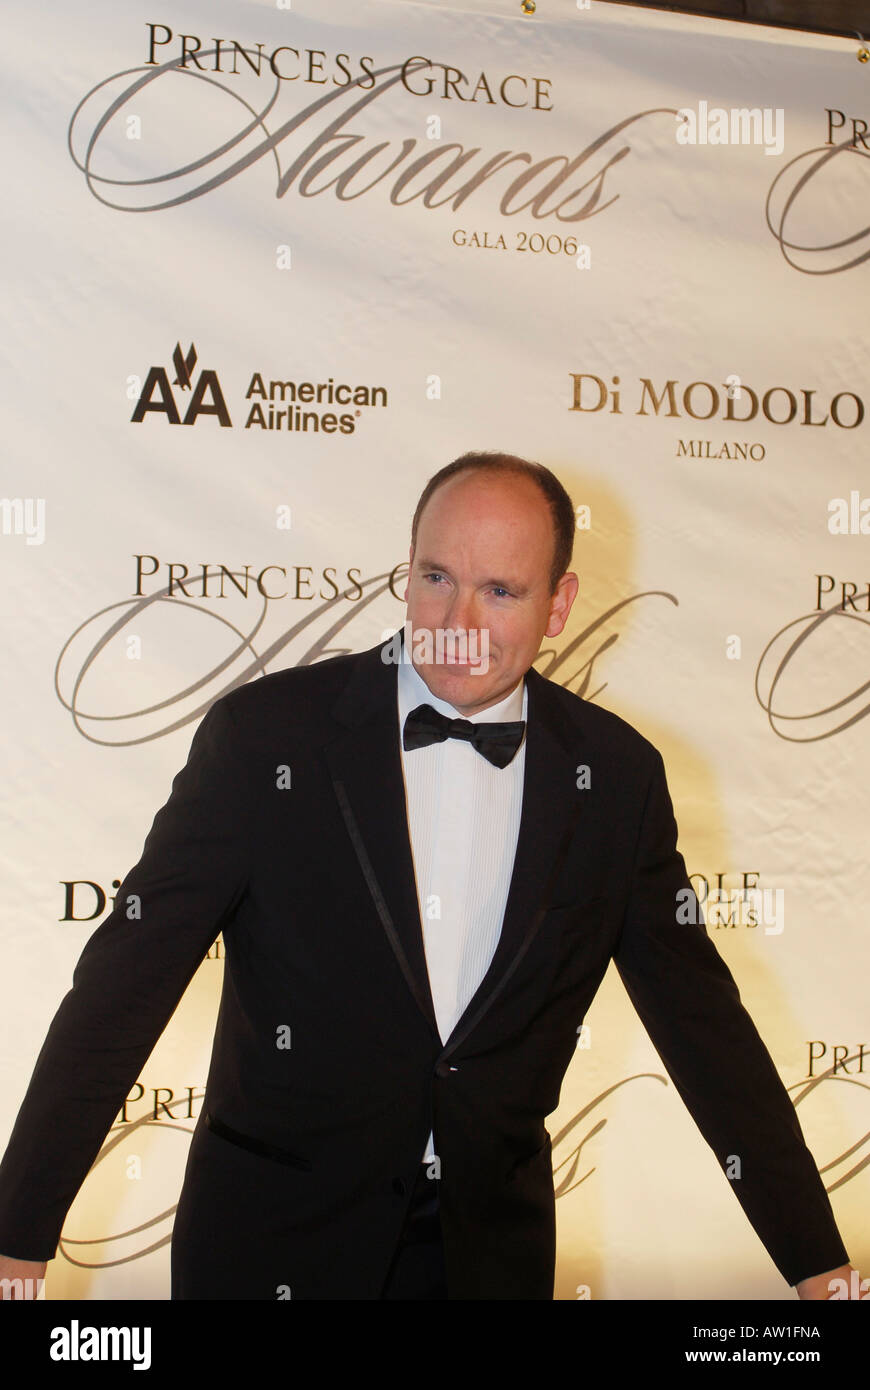 HSH PRINCE ALBERT II OF MONACO New York United States November 2 2006 HSH Prince Albert II of Monaco to present Twyla Tharp with the Prince Rainier III Award at the 2006 Princess Grace Awards Gala Surprise performance by Alexa Ray Joel daugter of Billy Joel and model Christie Brinkley Cipriani NYC USA - Stock Image